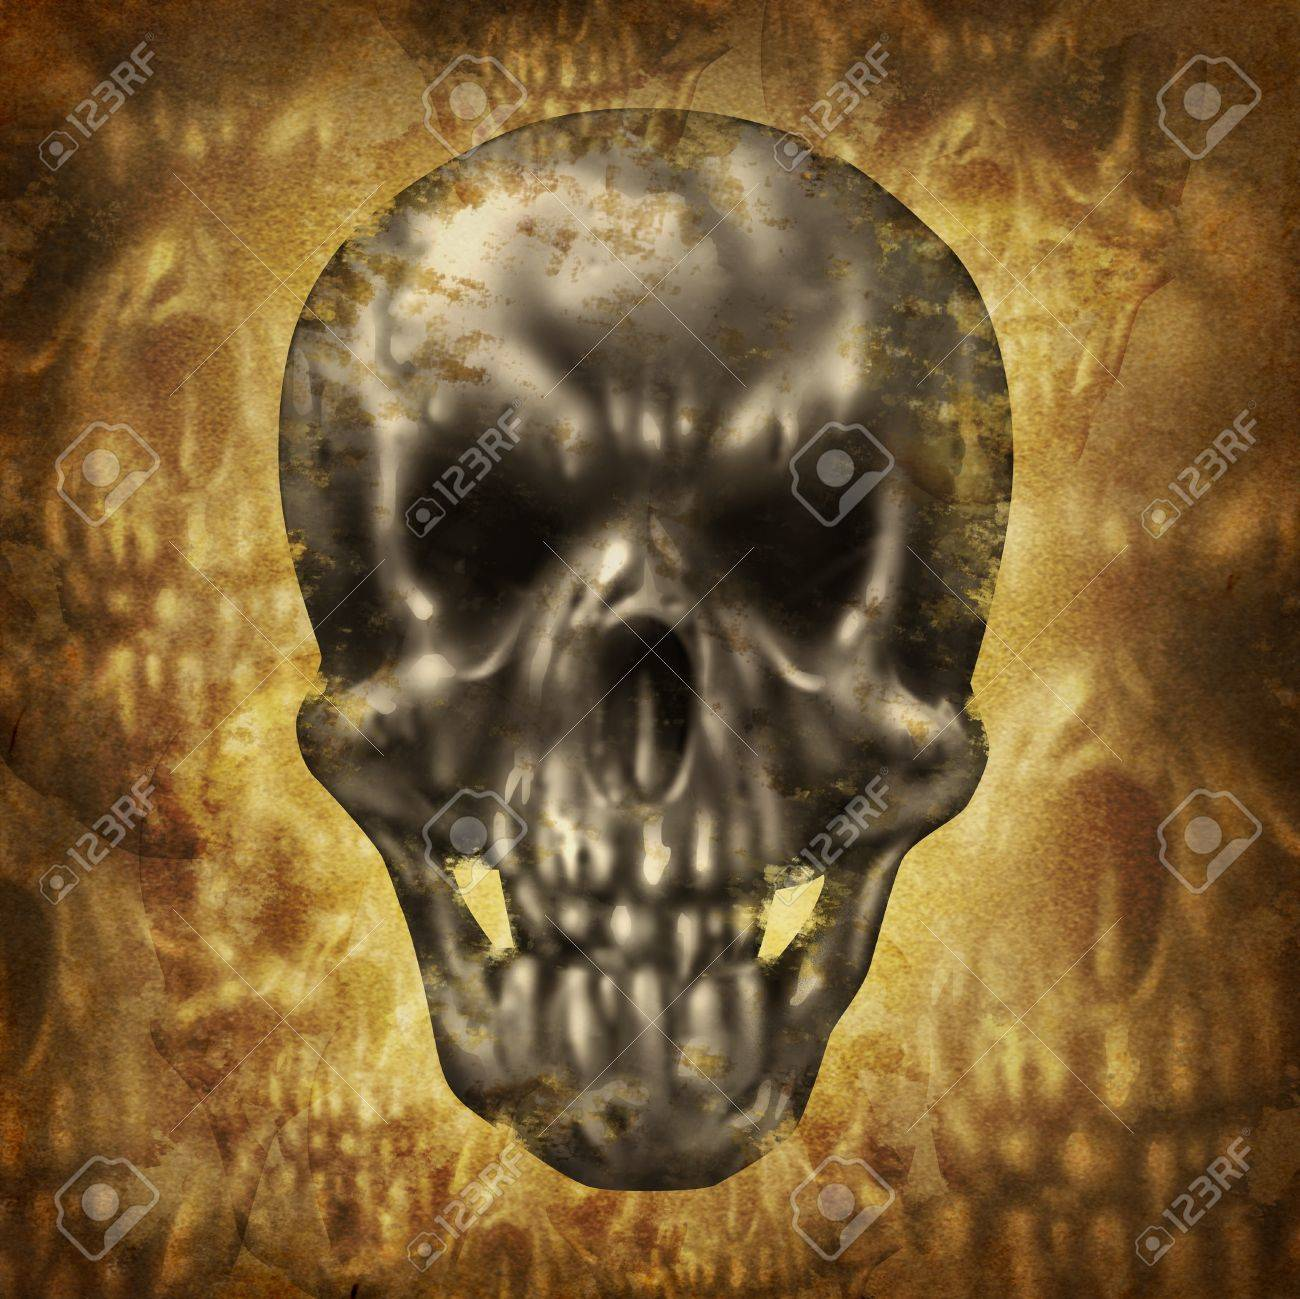 Spooky huan skull concept on an old dirty grunge background on parchment paper texture as a fantasy halloween symbol of zombies and ghosts Stock Photo - 21971155